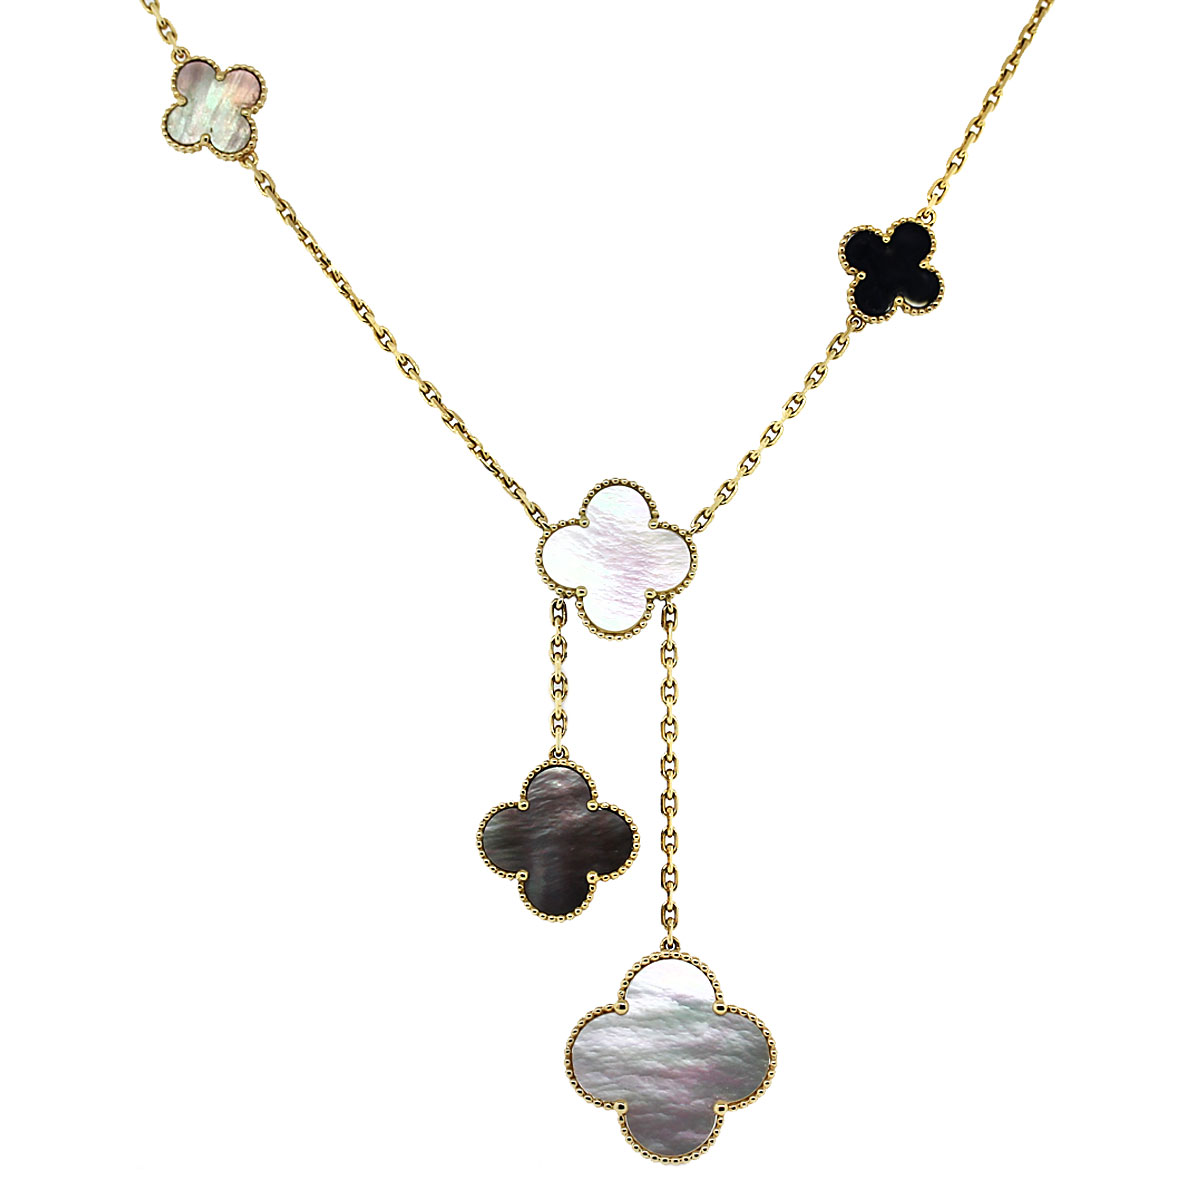 Van Cleef Amp Arpels Magic Alhambra Necklace With Pendant